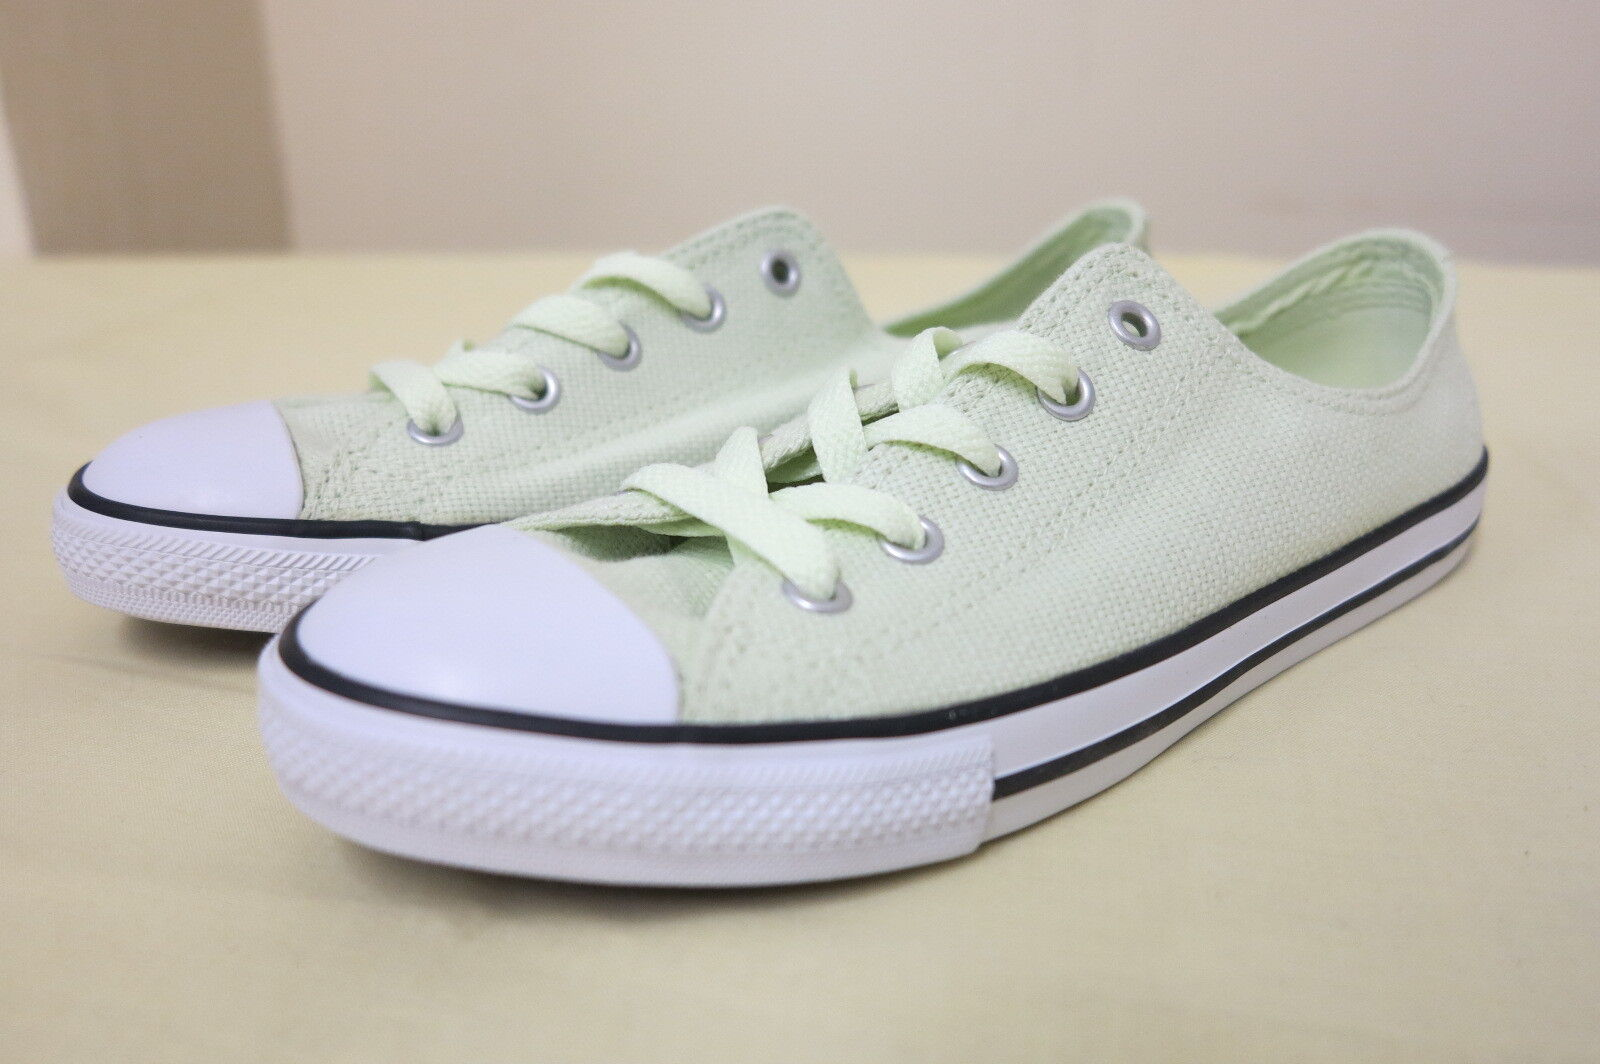 COVVERSE damen TRAINERS ALL STAR CT DAINTY OX PISTACH 4.5UK 37.5EU 23.5CM 6.5US